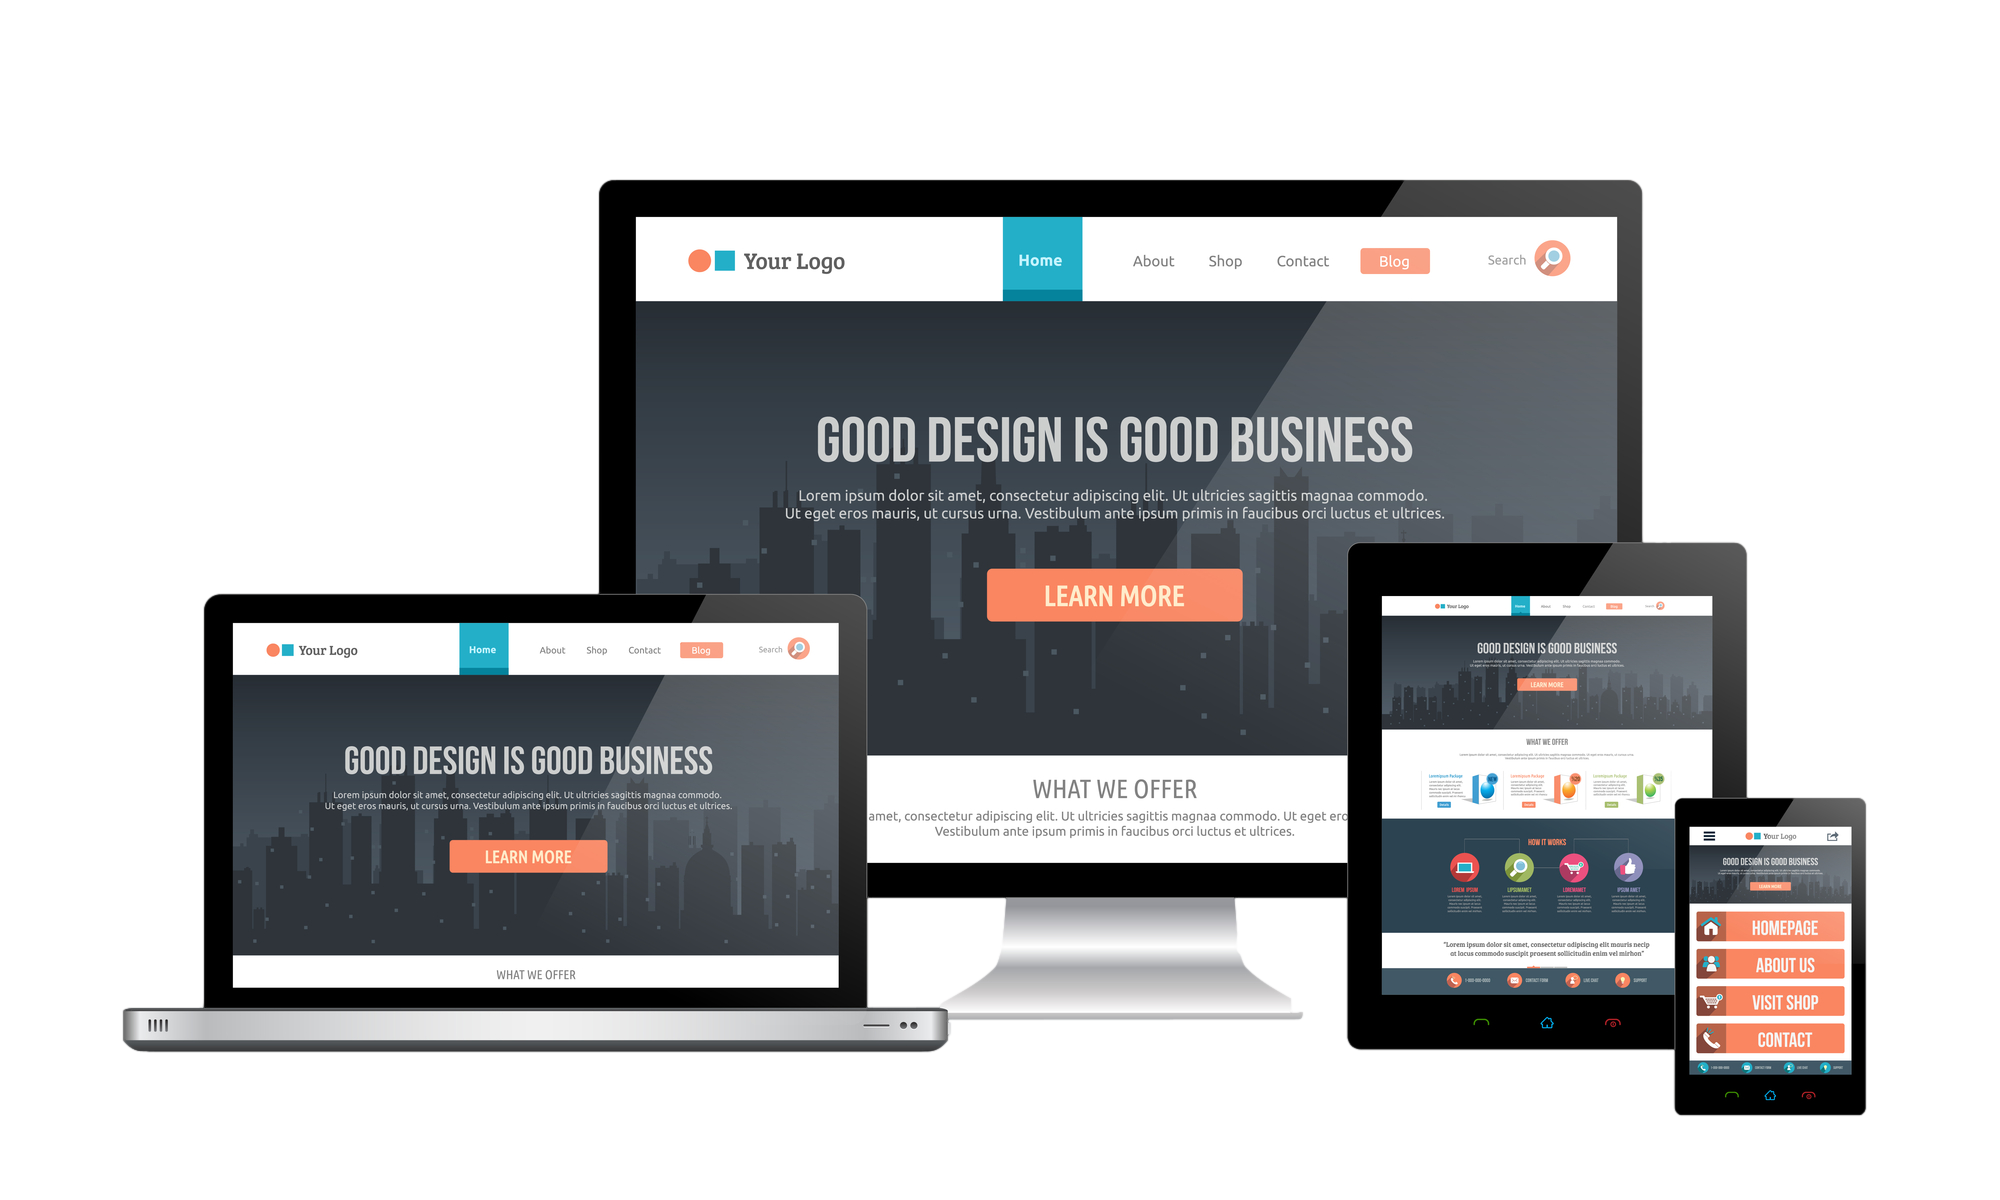 Are you after a website design company that provides flexibility in design?